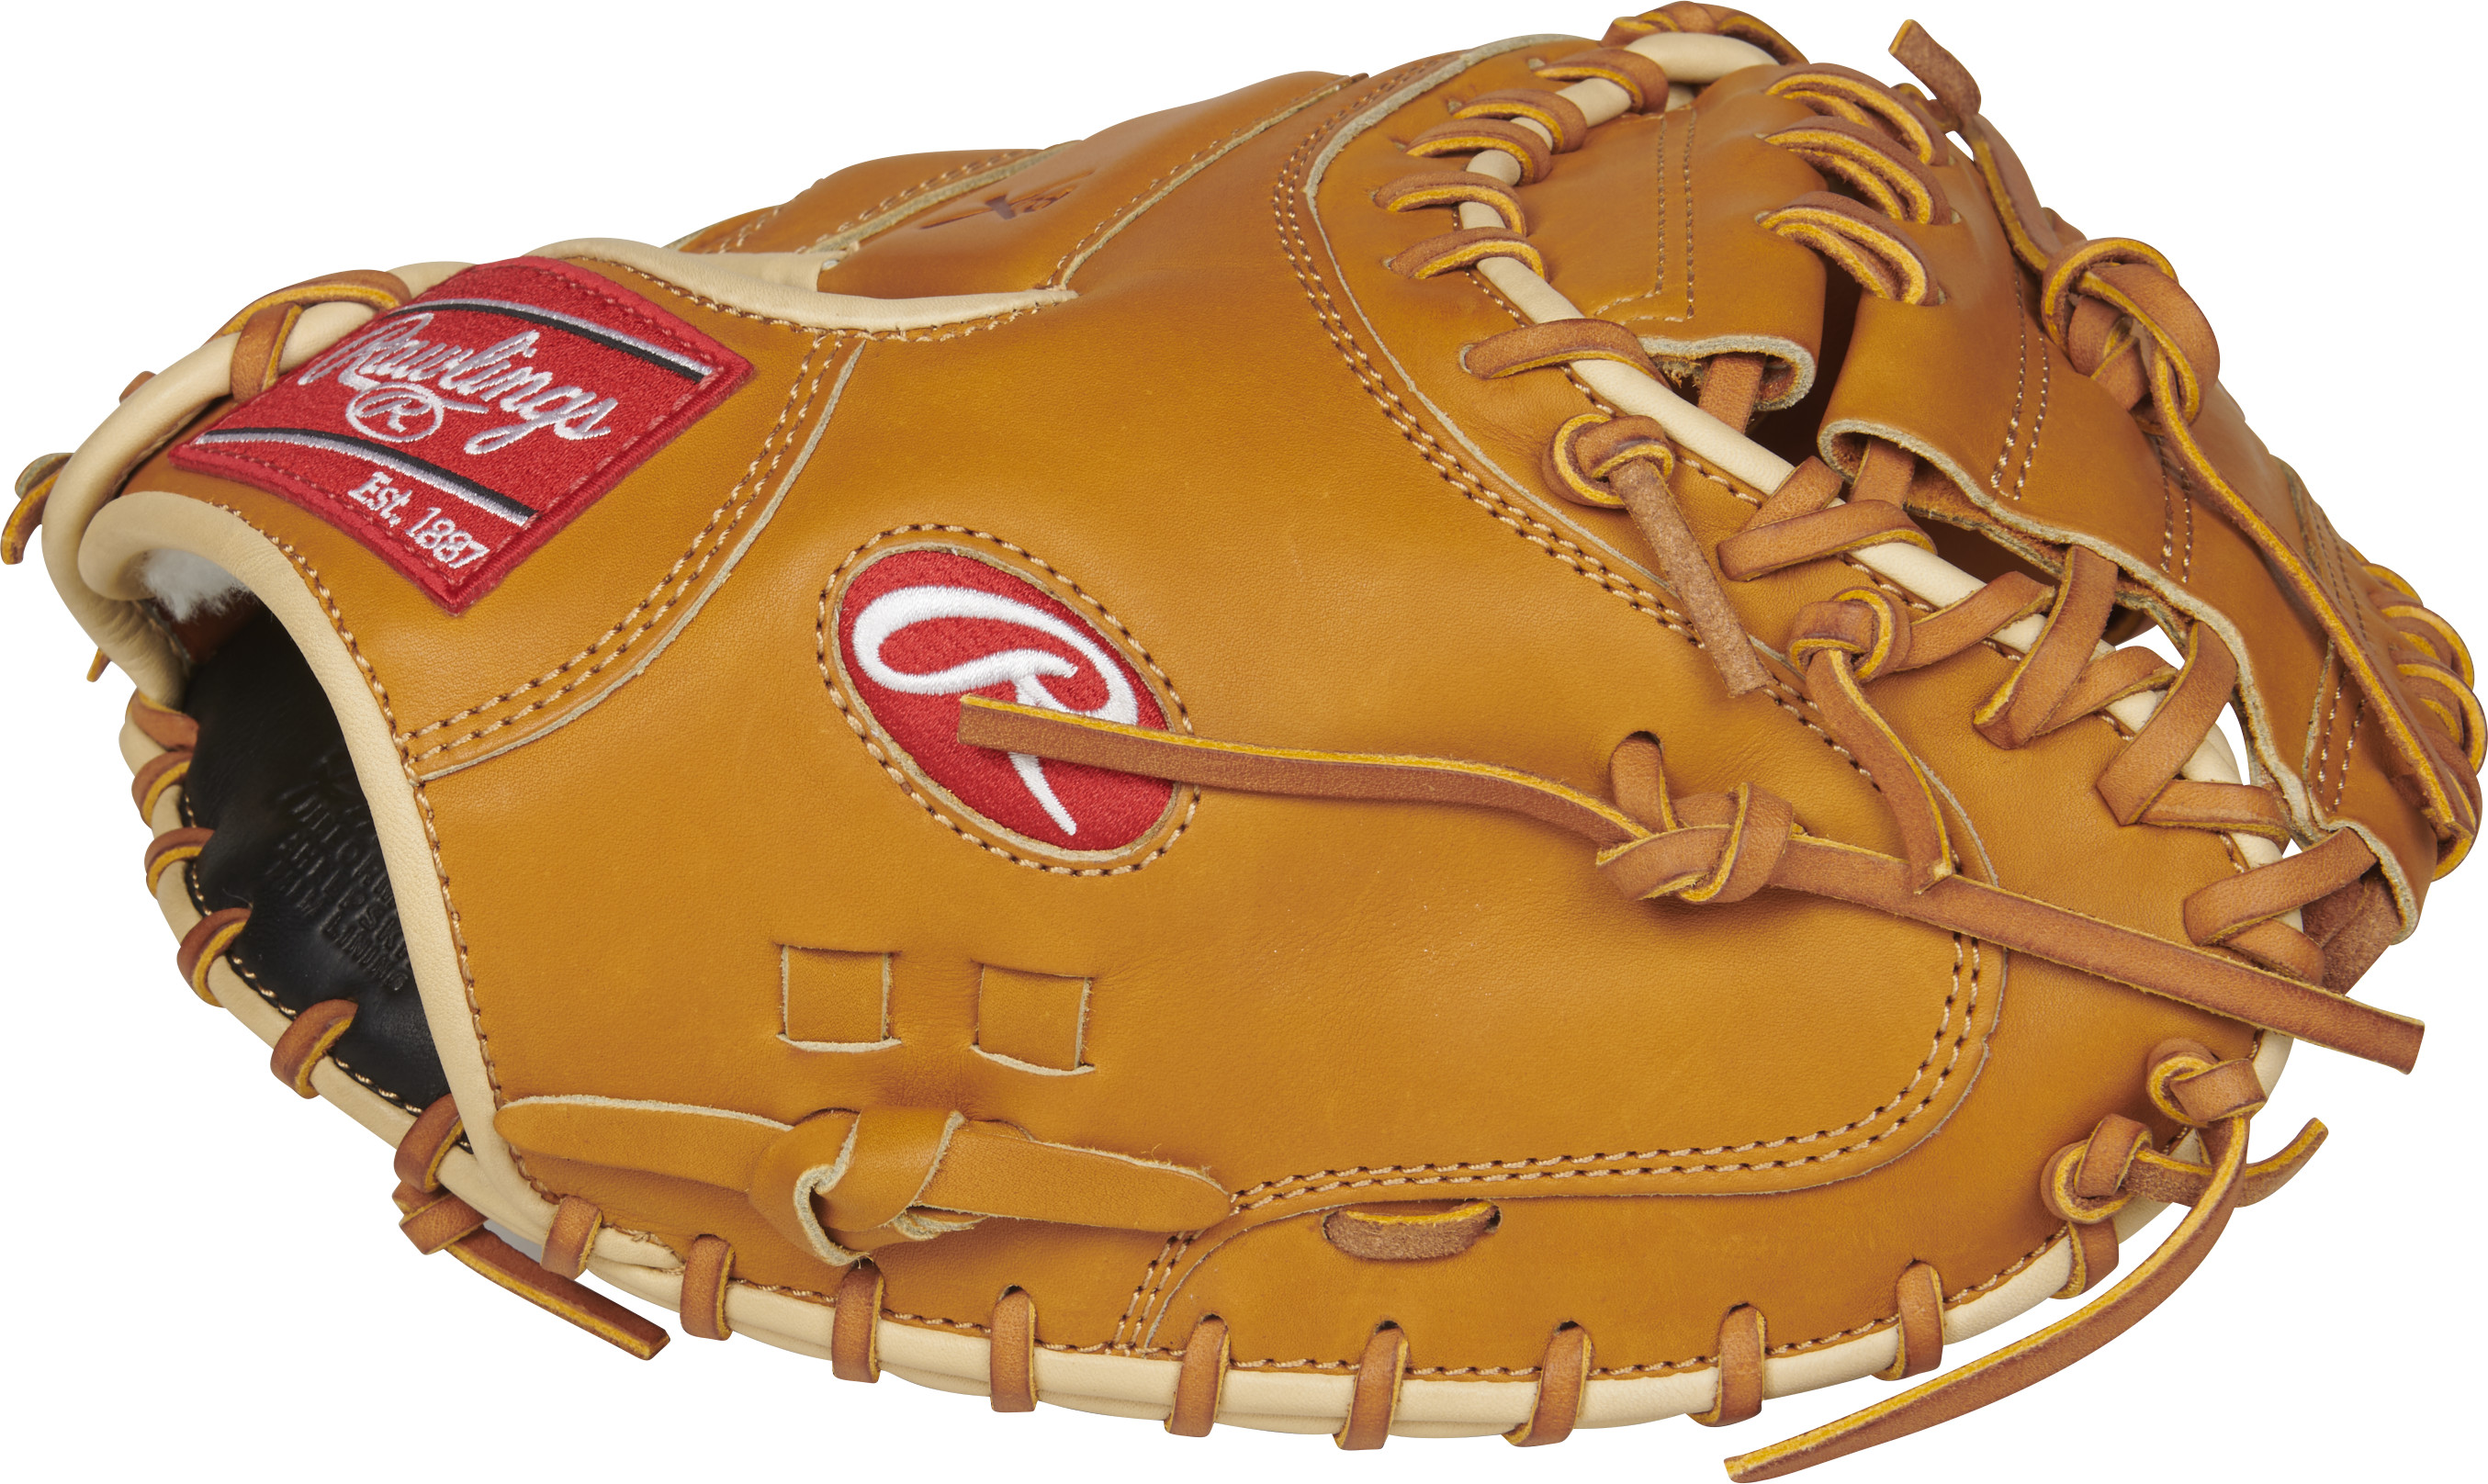 http://www.bestbatdeals.com/images/rawlingsgloves/PROSCM43RT-3.jpg